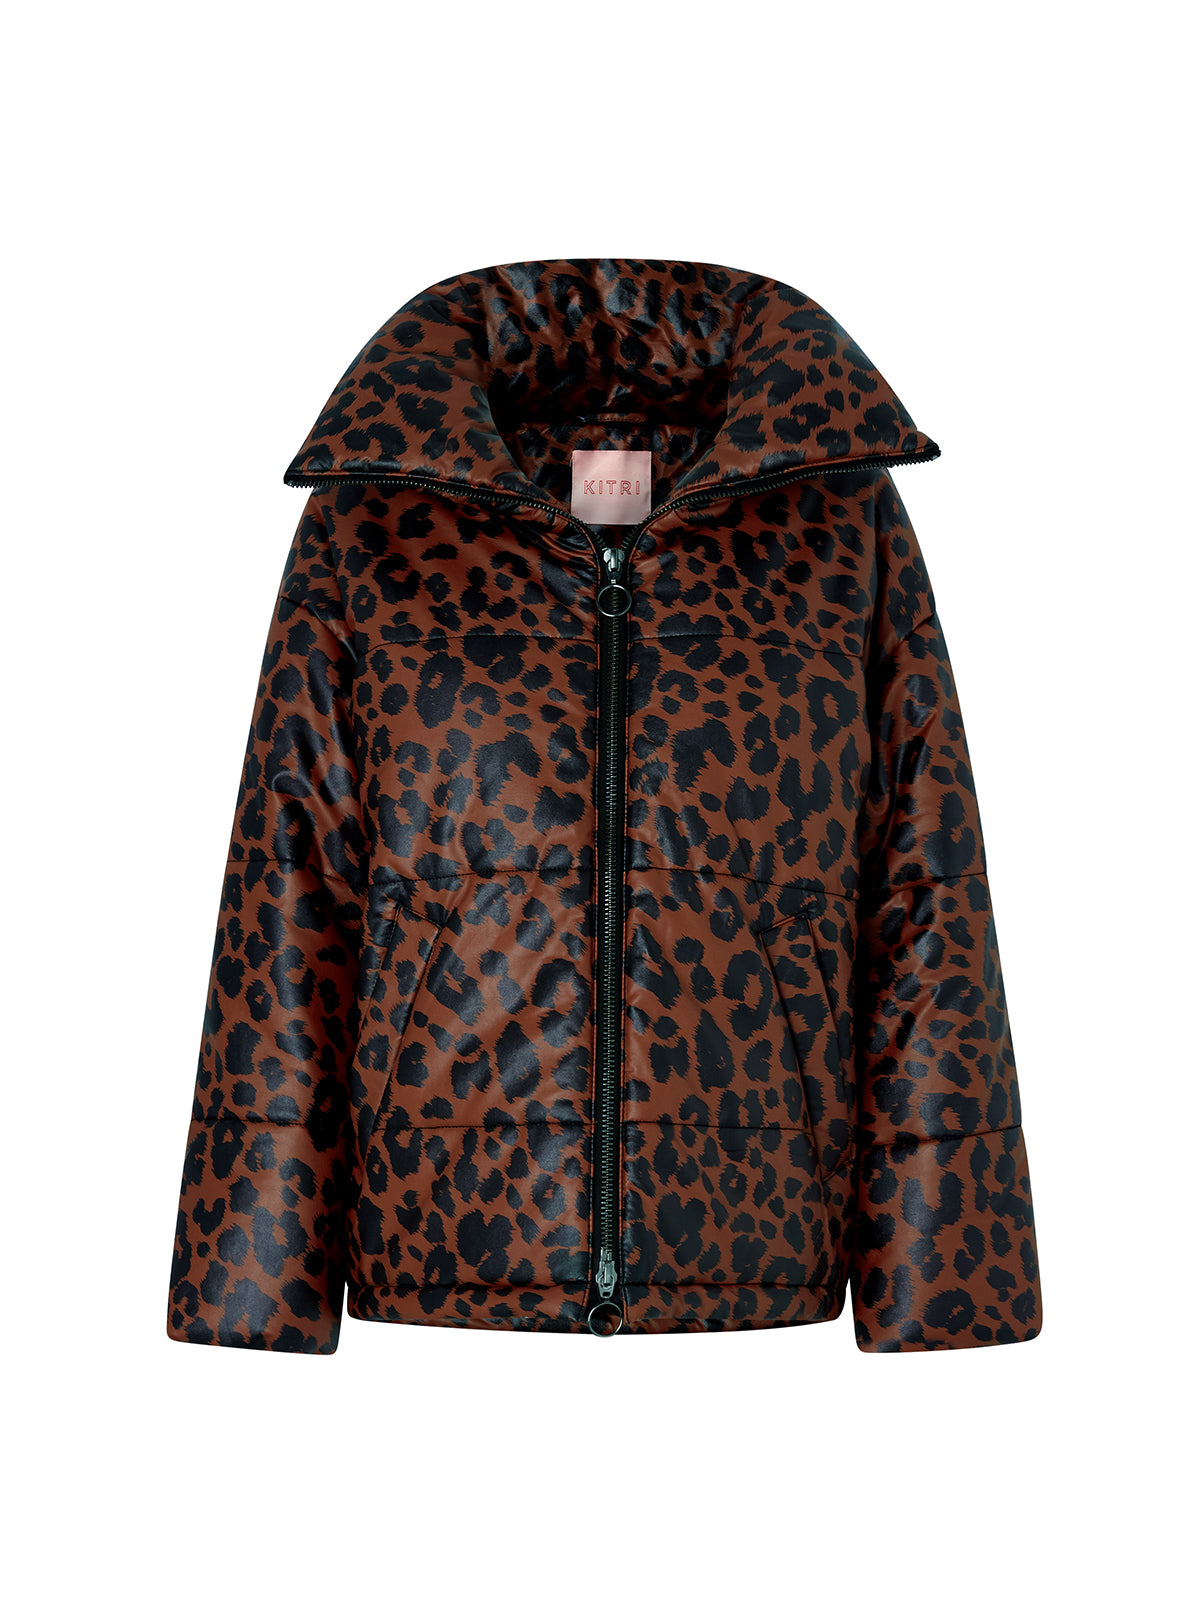 Paloma Leopard Print Faux Leather Puffer Coat by KITRI Studio